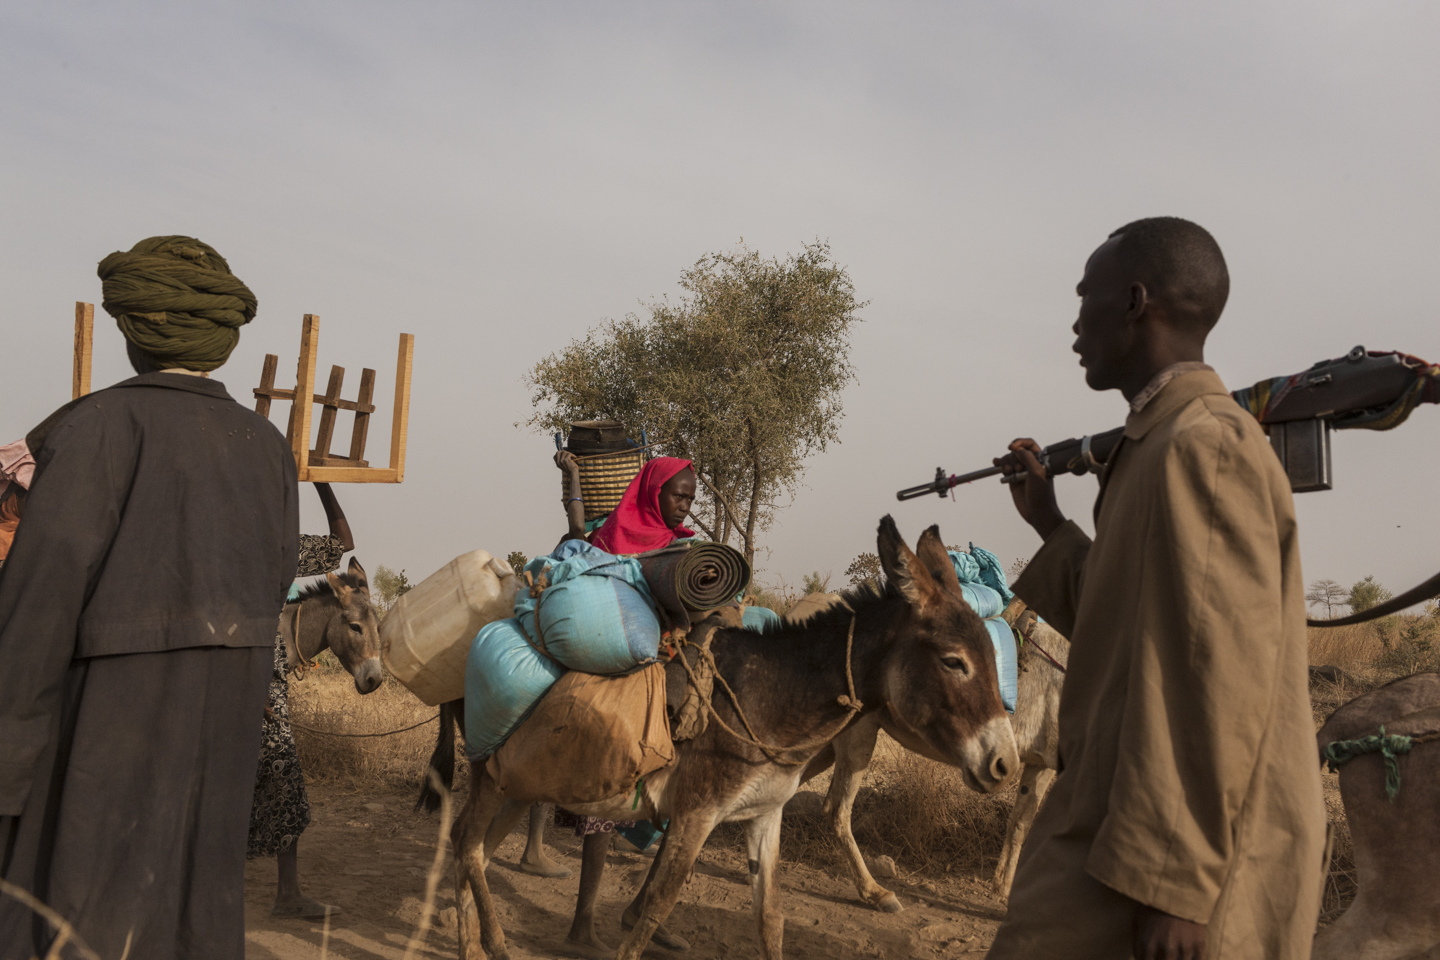 Civilians flee their homes with the few belongings that they can carry, while the SLA-AW walks towards the front lines in Central Darfur, Sudan, March 4, 2015.